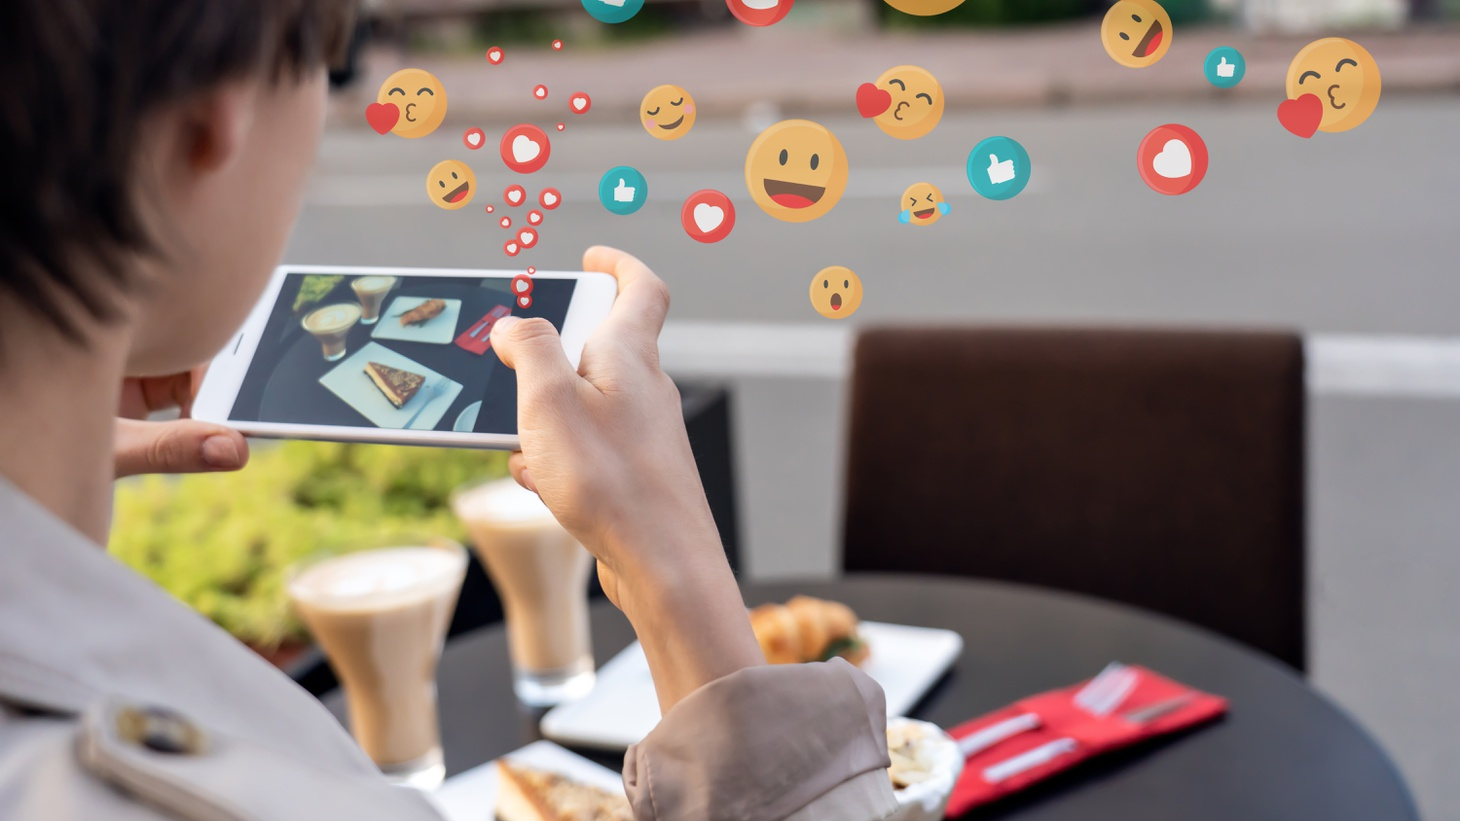 Companies offer money or free products to social media influencers who must then create a certain number of posts, videos, and/or stories with those goods.